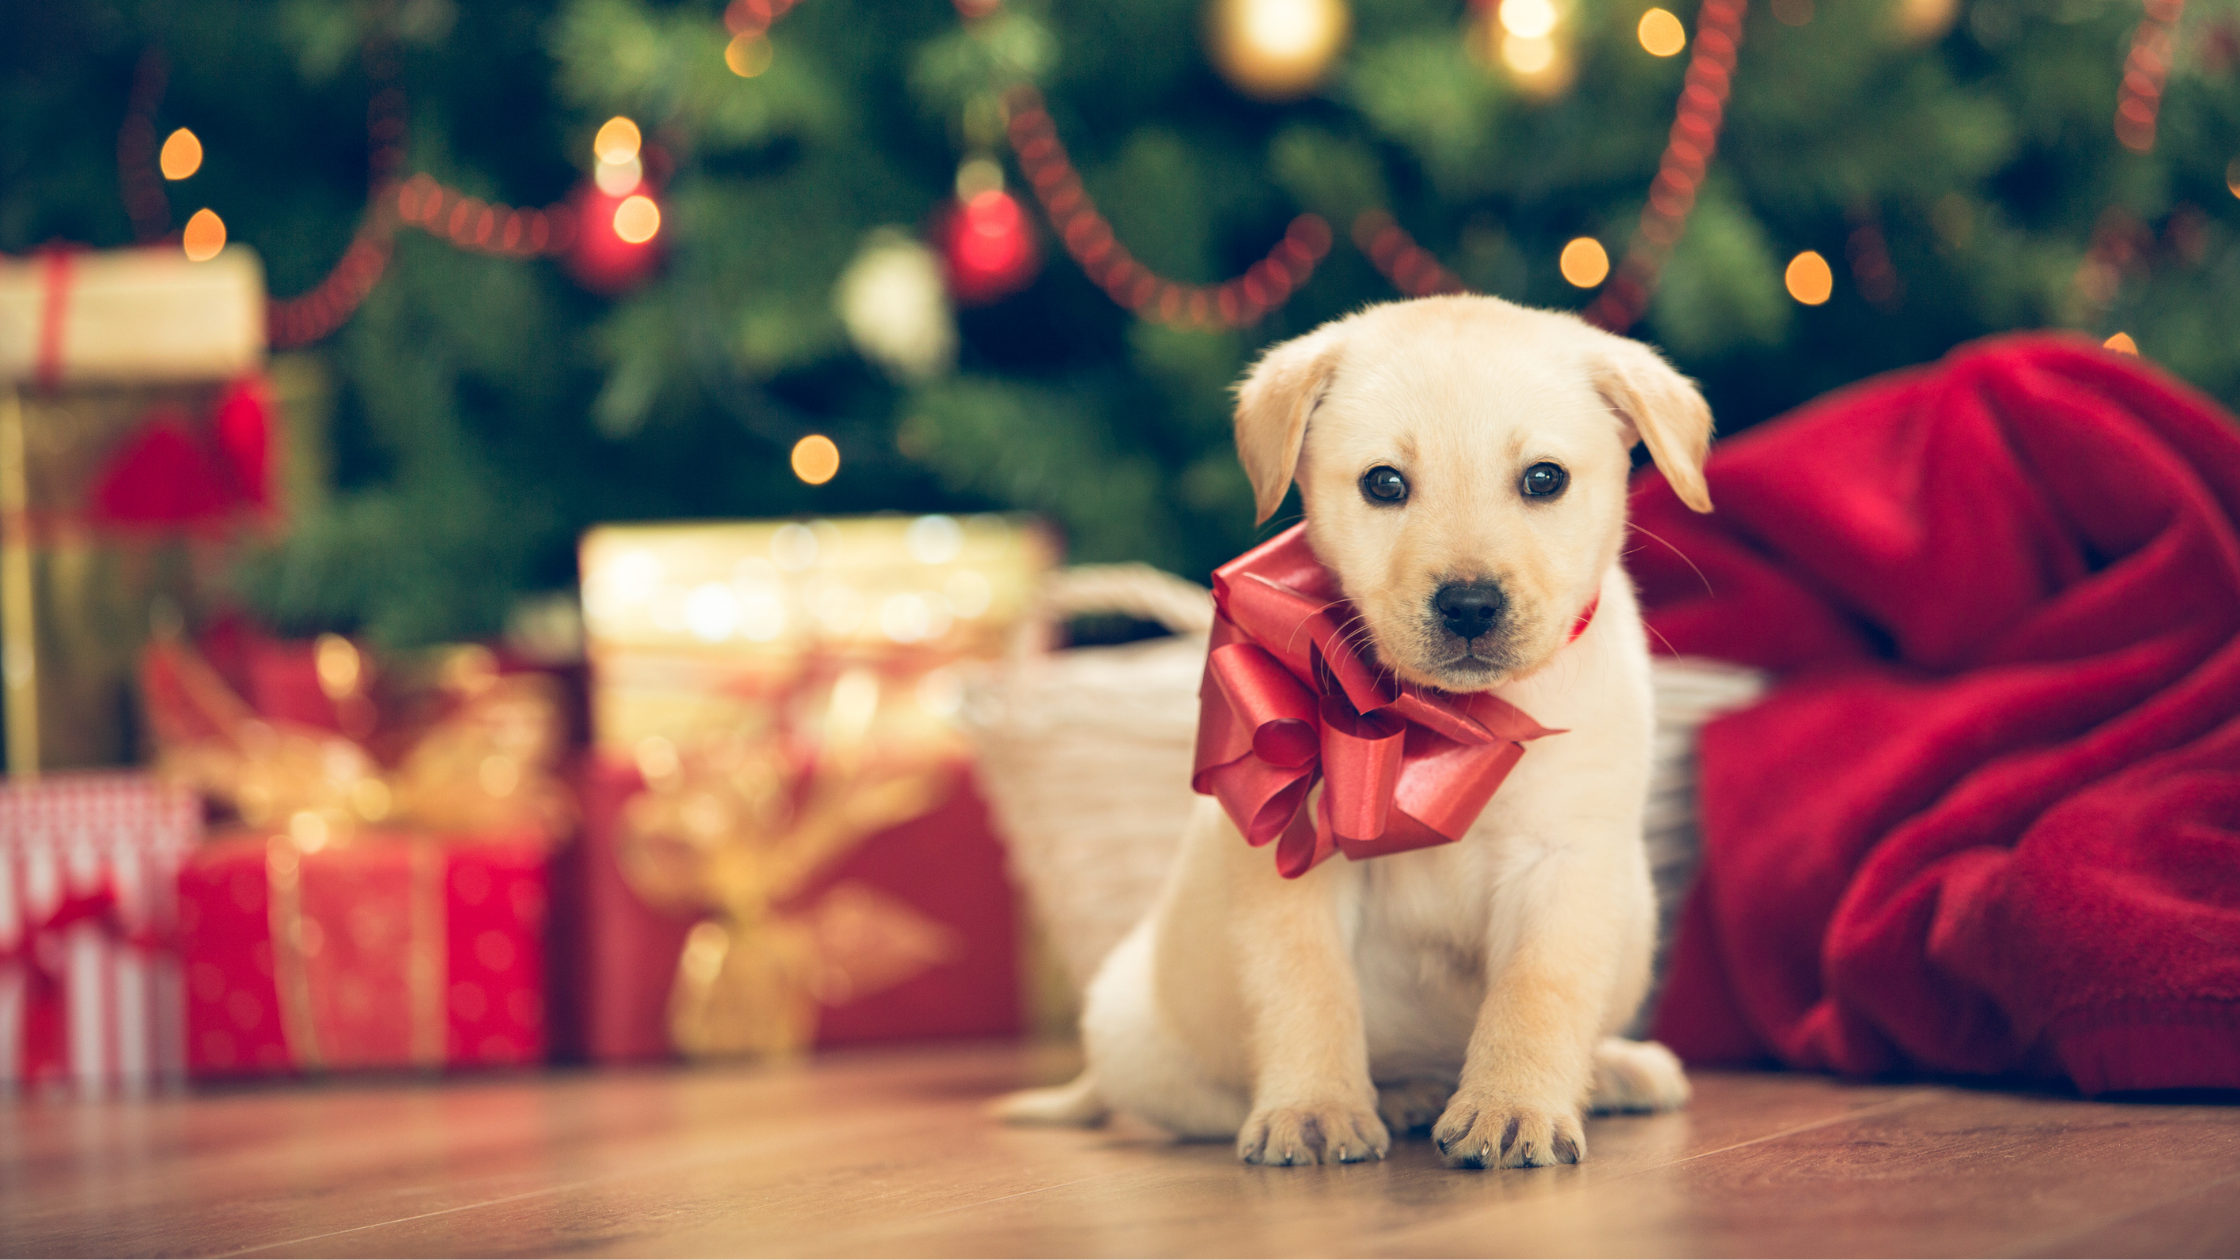 Things to consider before putting a new puppy under the Christmas tree